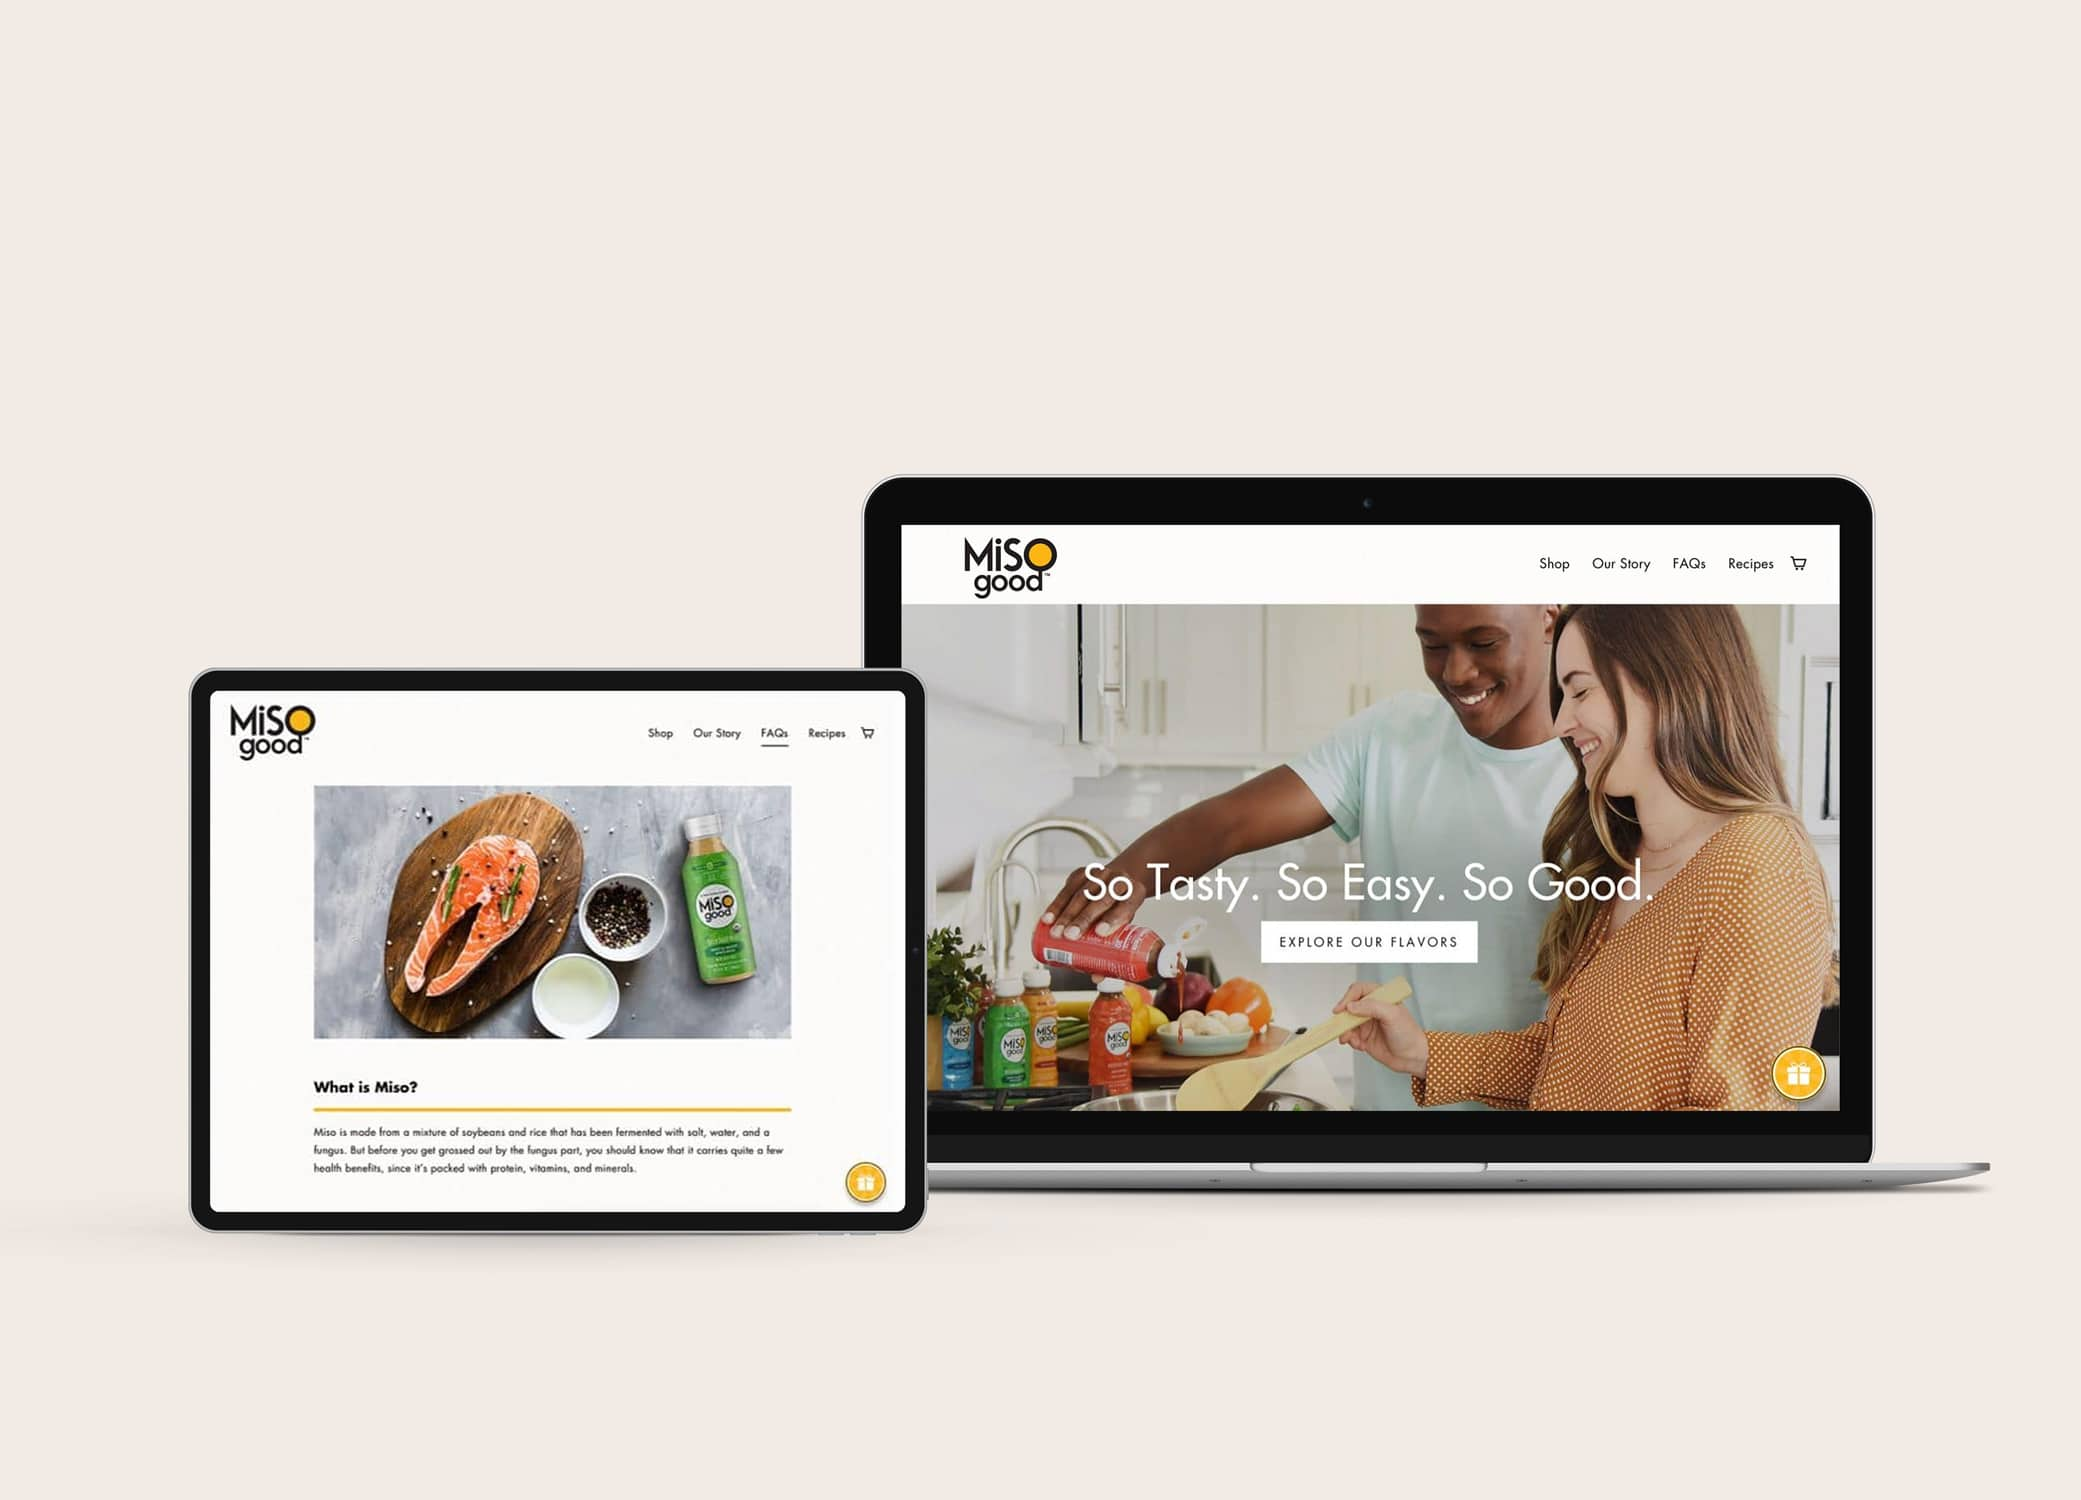 MiSOgood clean website design with graphic design for food packaging and hero image of couple cooking together.